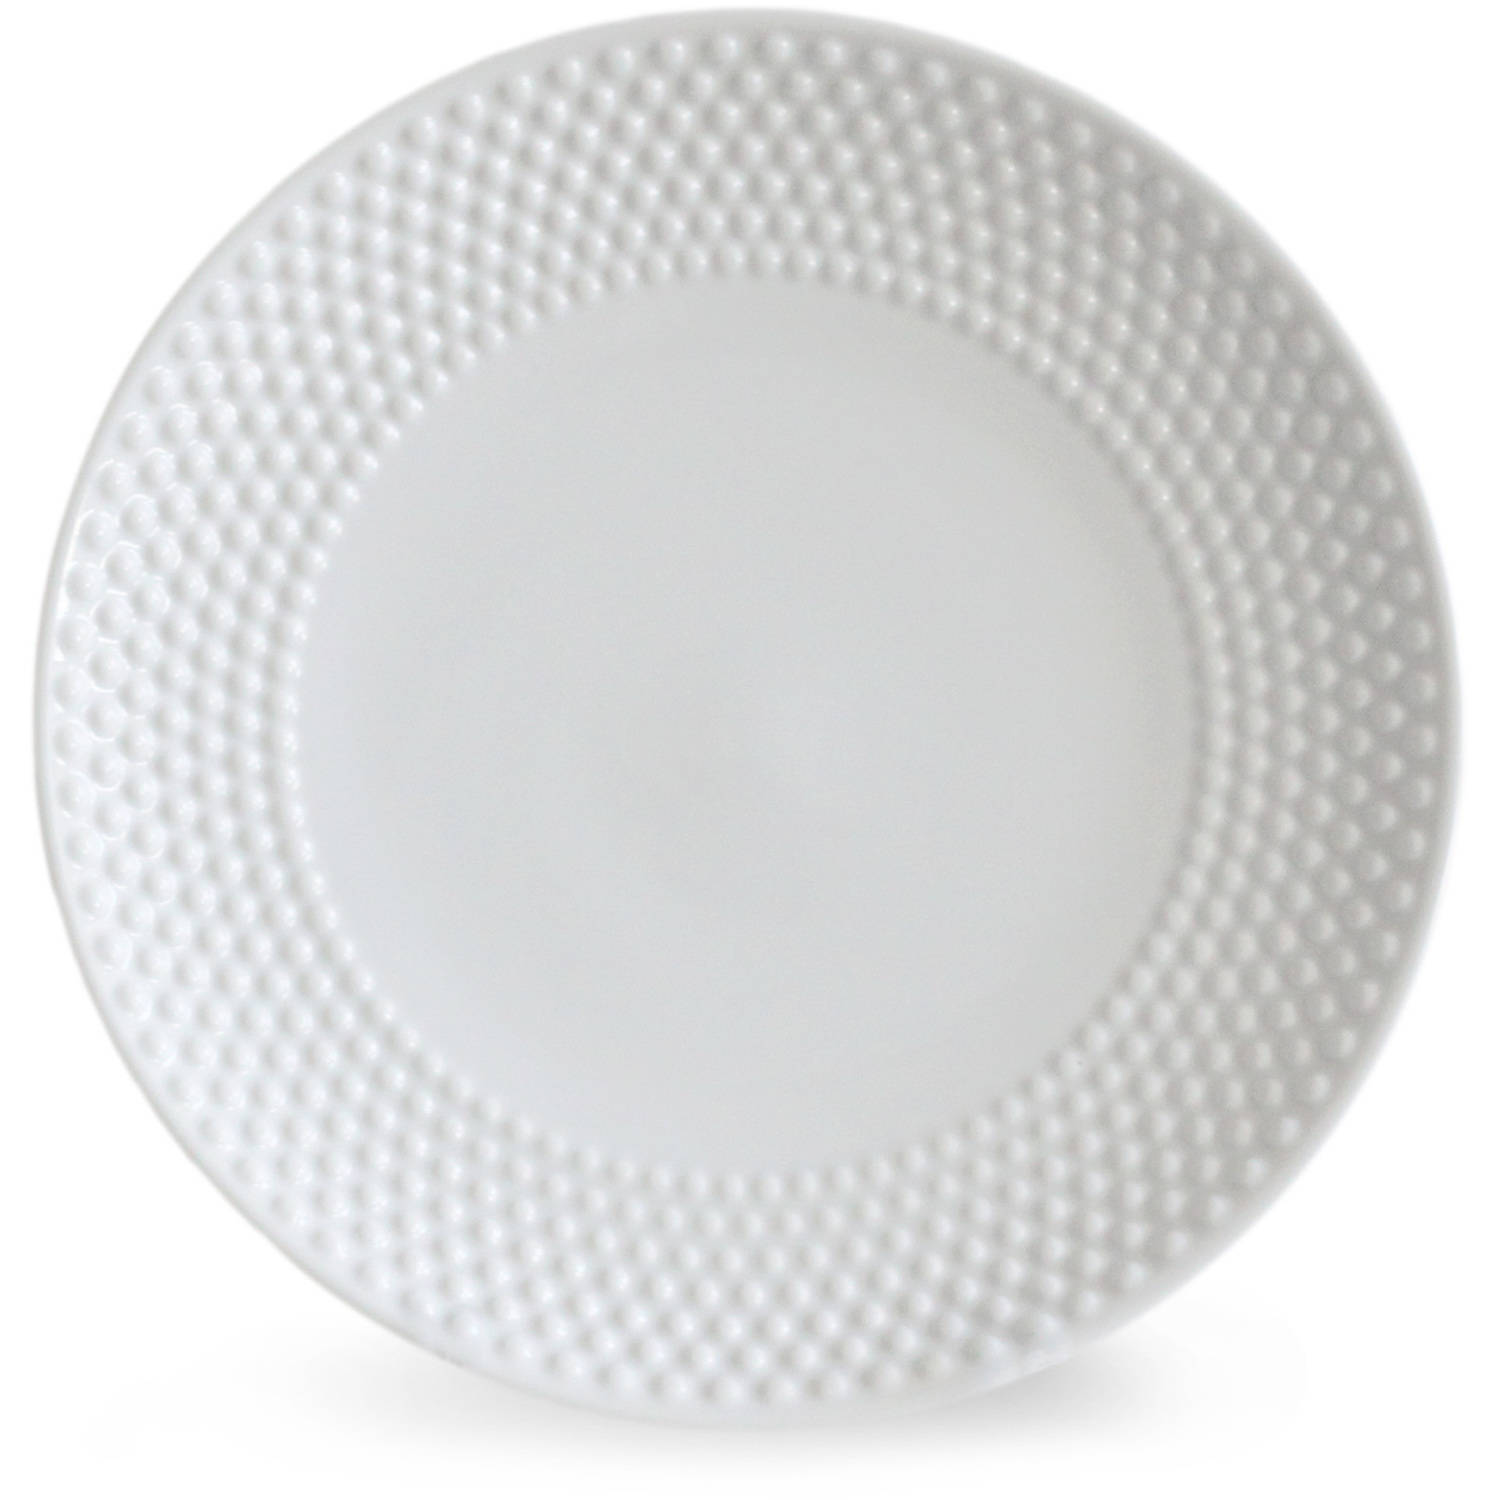 Better Homes And Gardens Plates